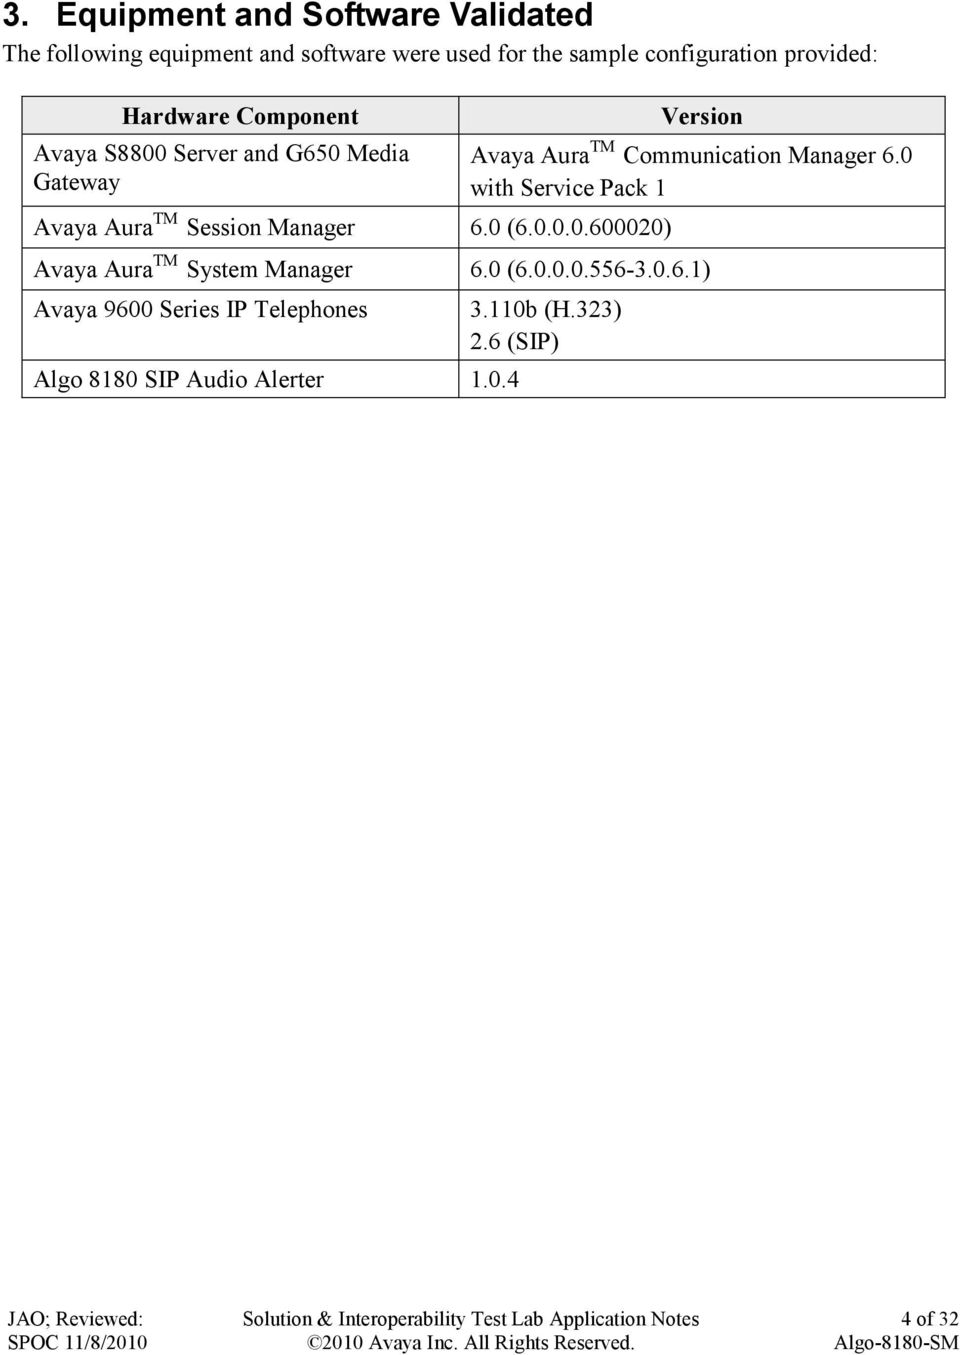 0 with Service Pack 1 Avaya Aura TM System Manager 6.